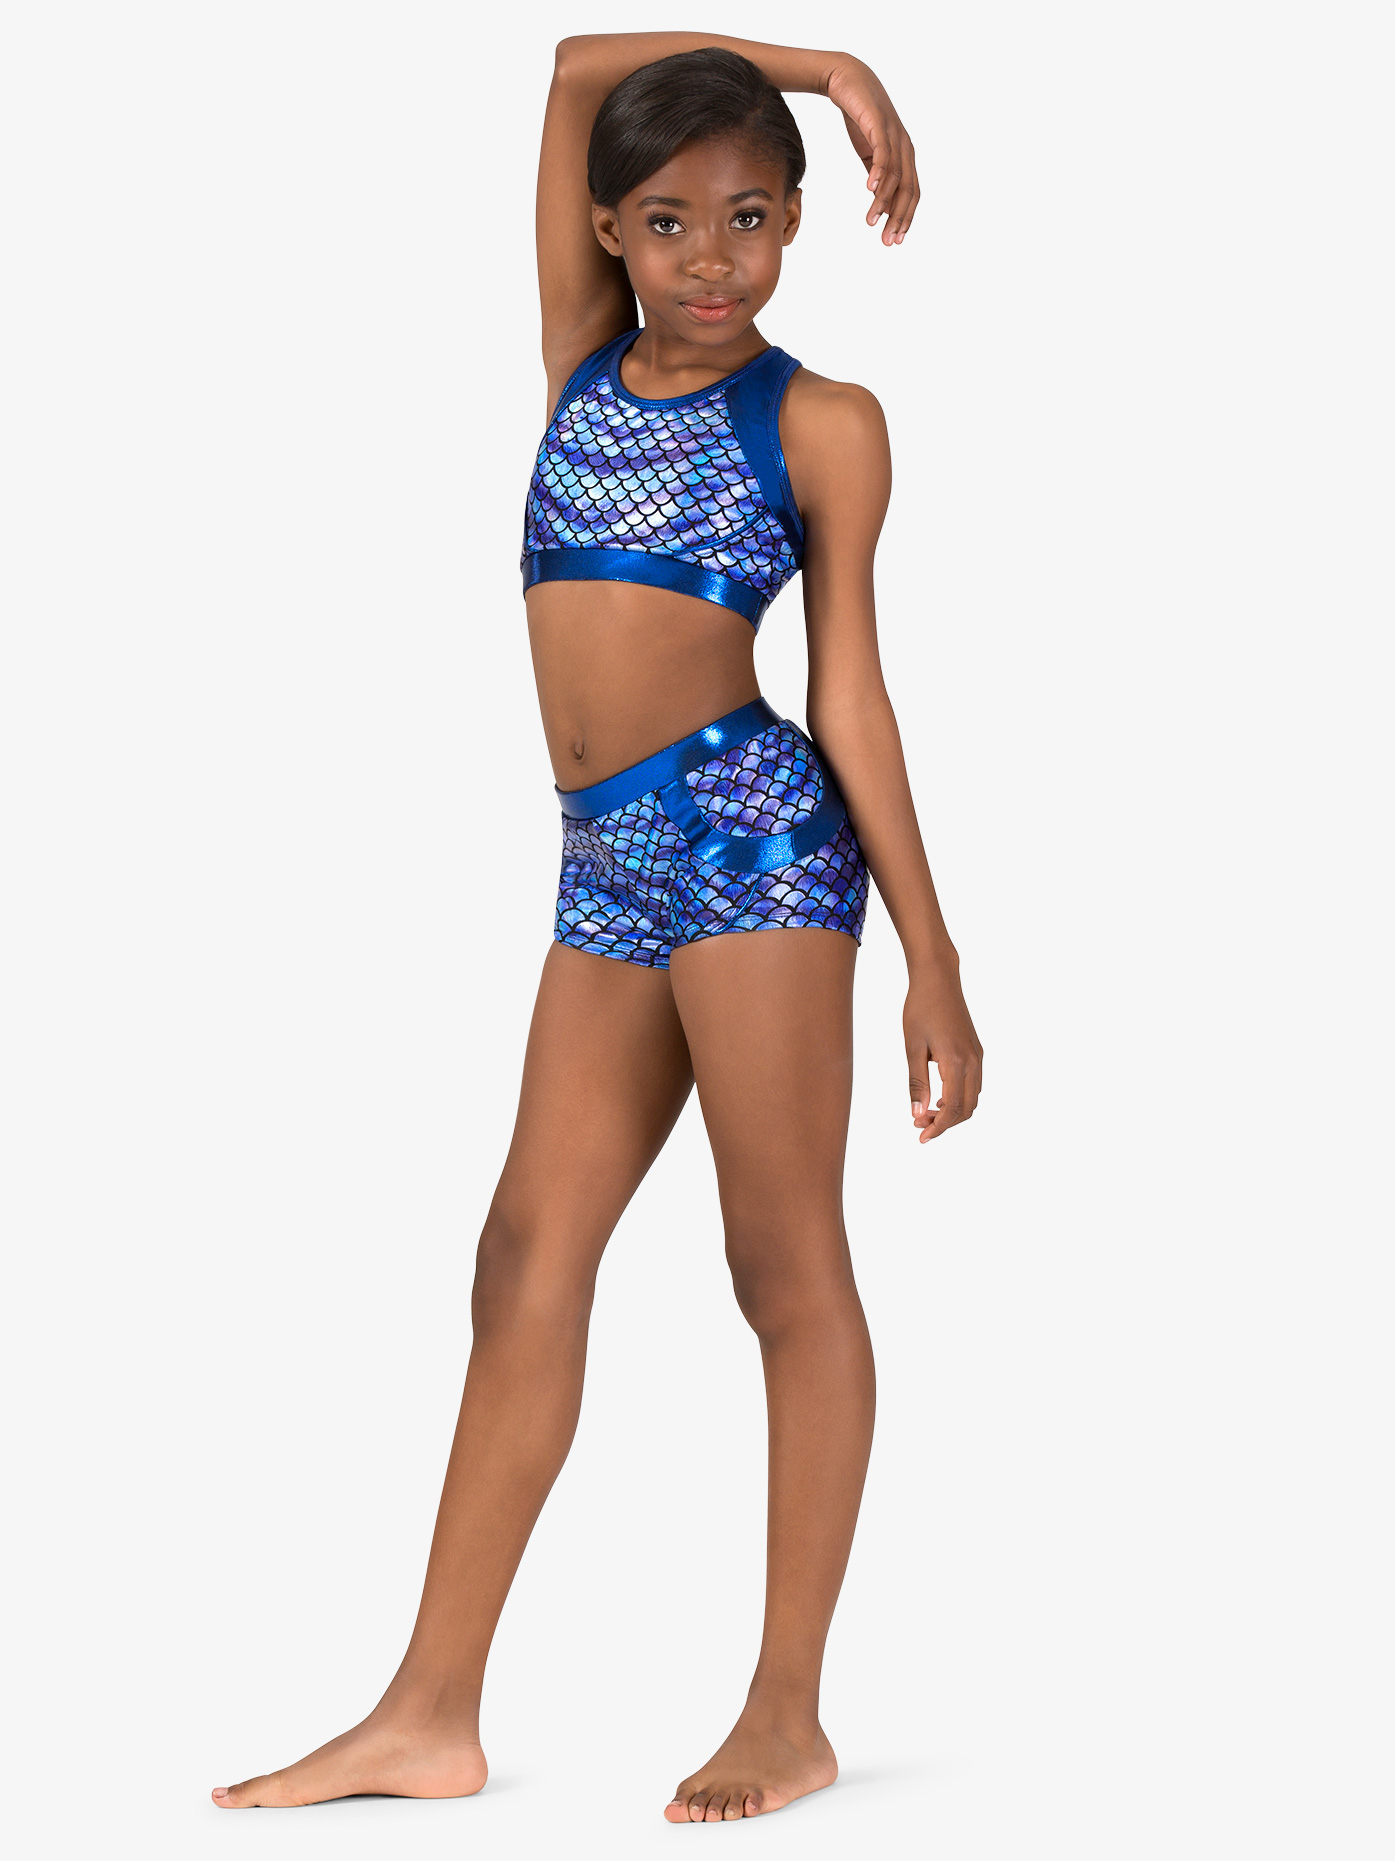 Perfect Balance Girls Gymnastics Fish Scale Print Shorts G694C